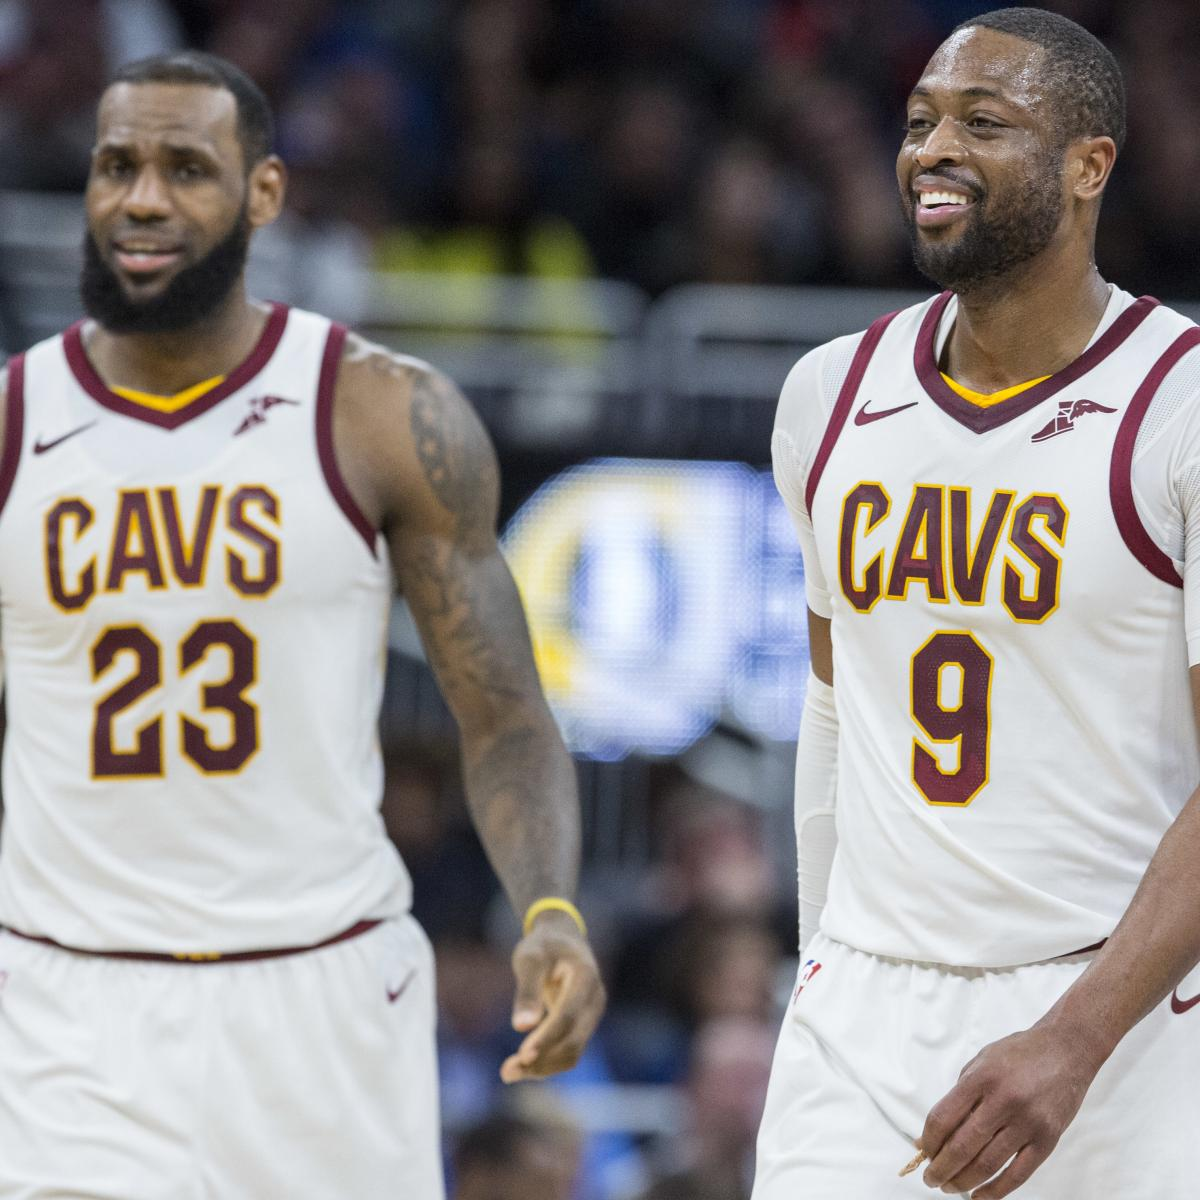 a98ea5a7141 Dwyane Wade Didn't Want Trade from Cavs, Wanted to Stay for NBA Finals Run    Bleacher Report   Latest News, Videos and Highlights